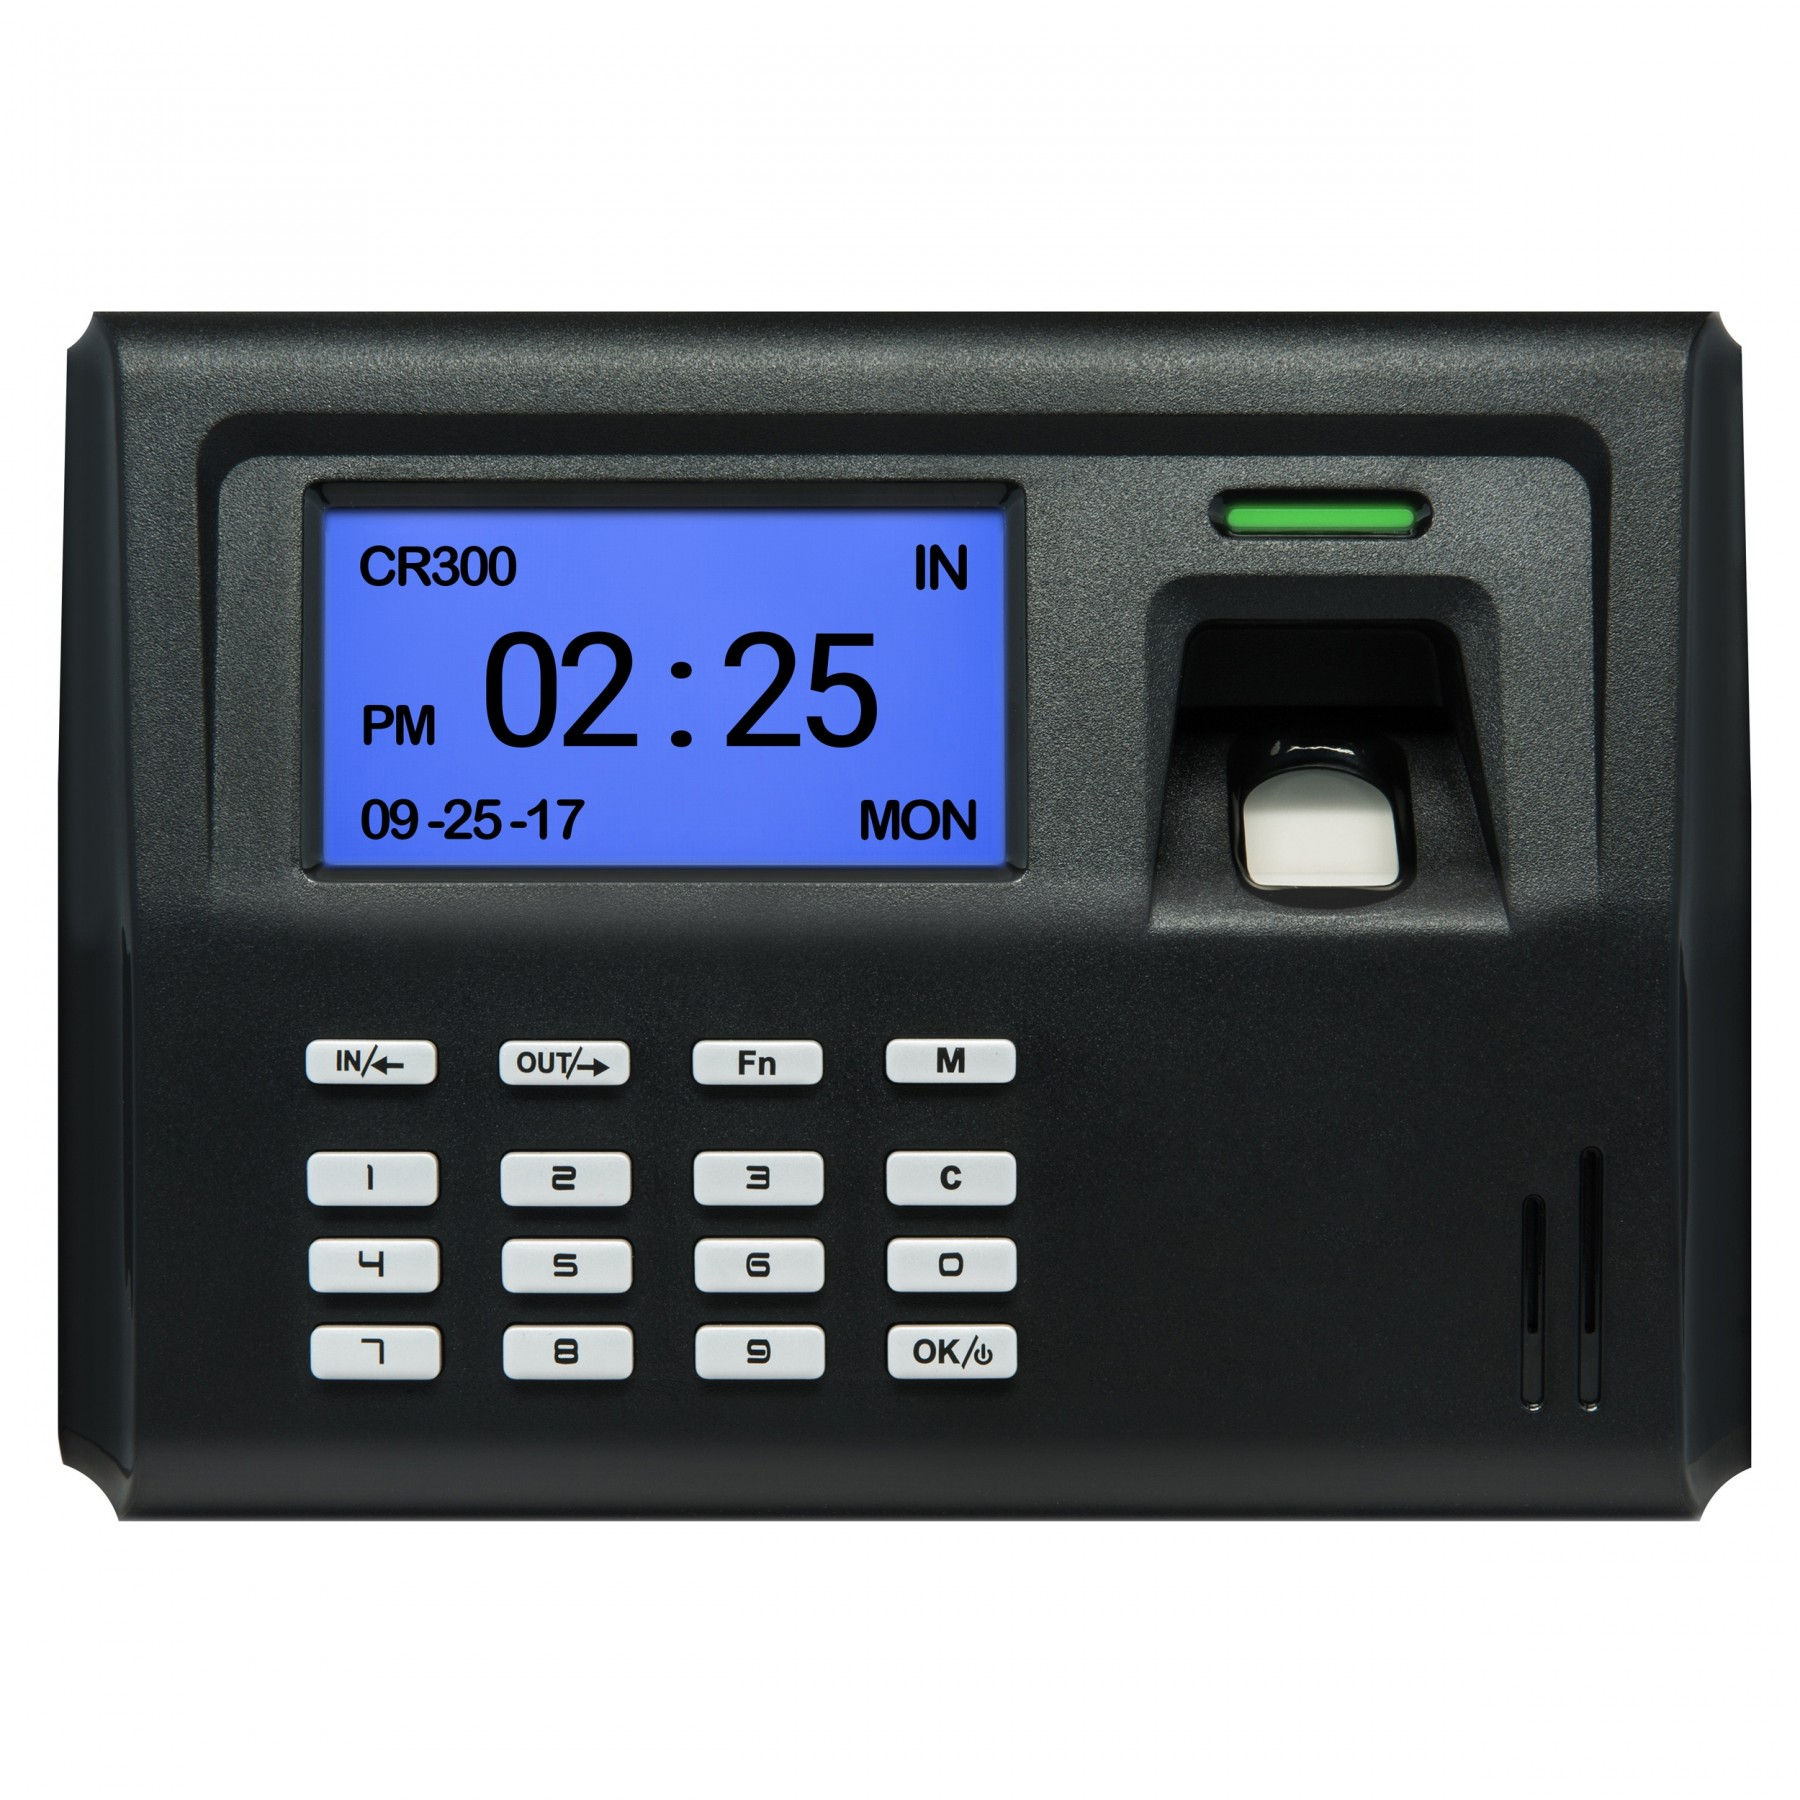 Tas Cr300 Advanced Fingerprint Time Clock